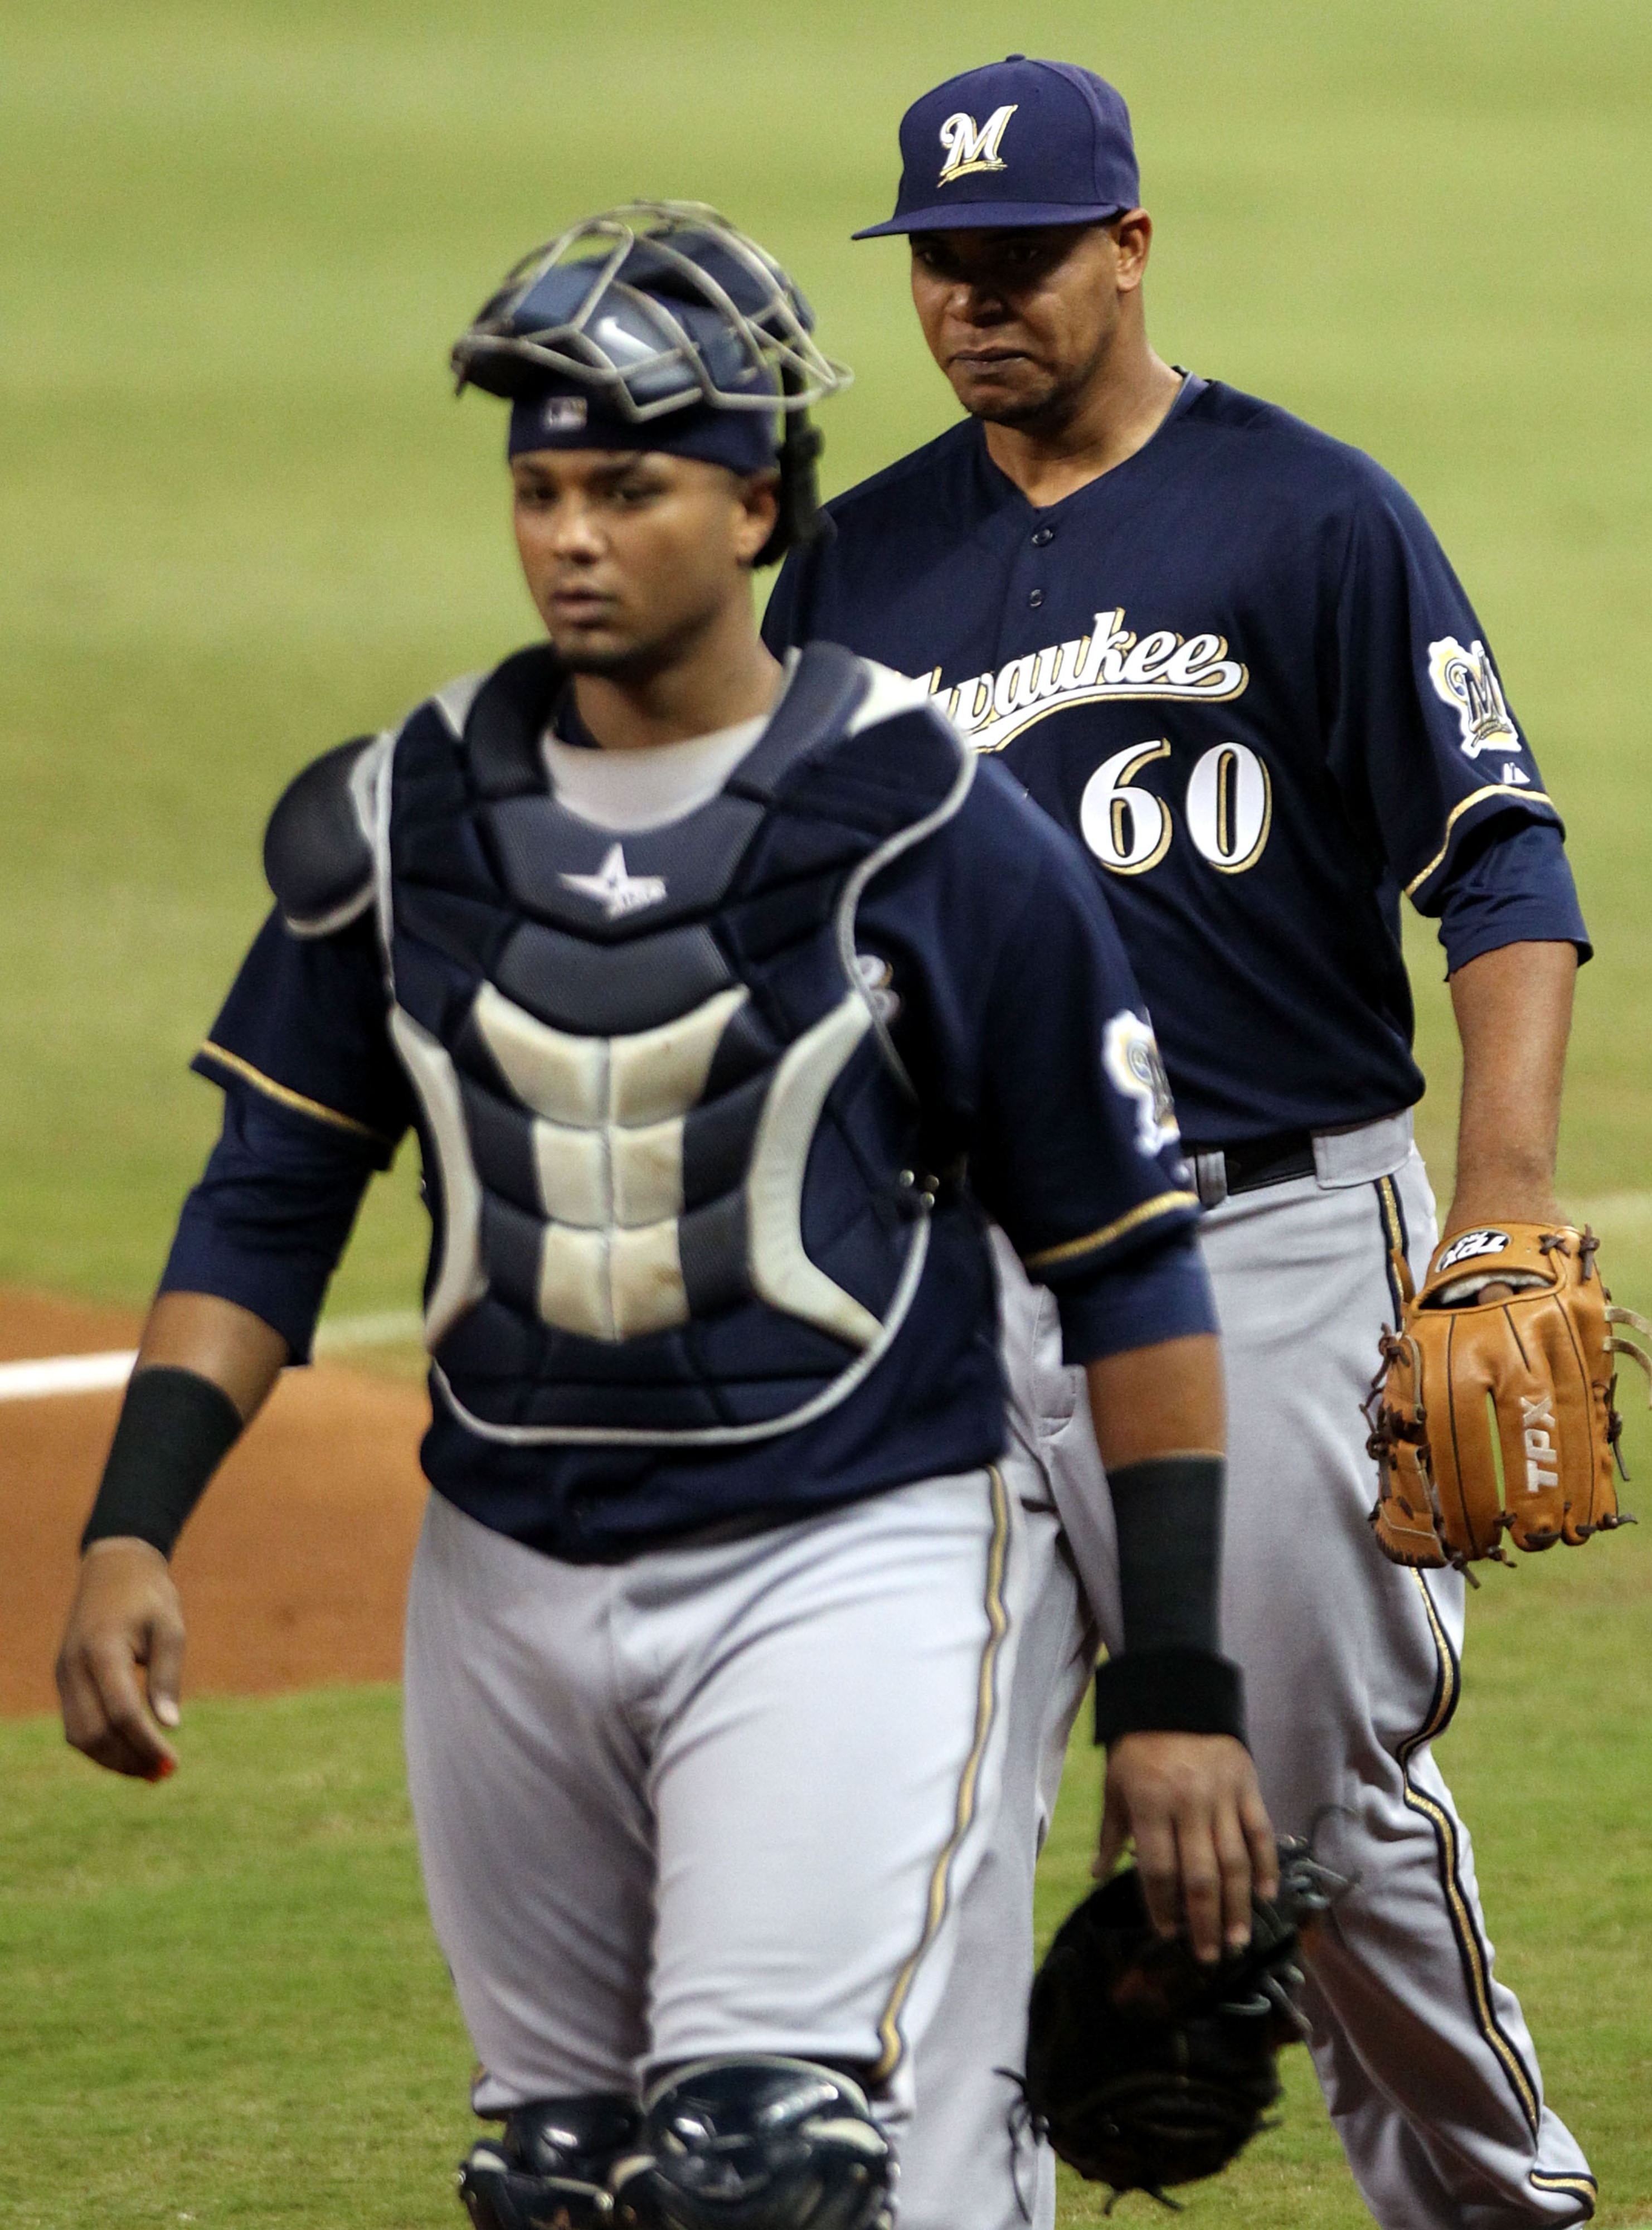 MIAMI, FL - SEPTEMBER 05:  Pitcher Willy Peralta #60 of the Milwaukee Brewers walks with Catcher Martin Maldonado #12 against the Miami Marlins at Marlins Park on September 5, 2012 in Miami, Florida.  (Photo by Marc Serota/Getty Images)